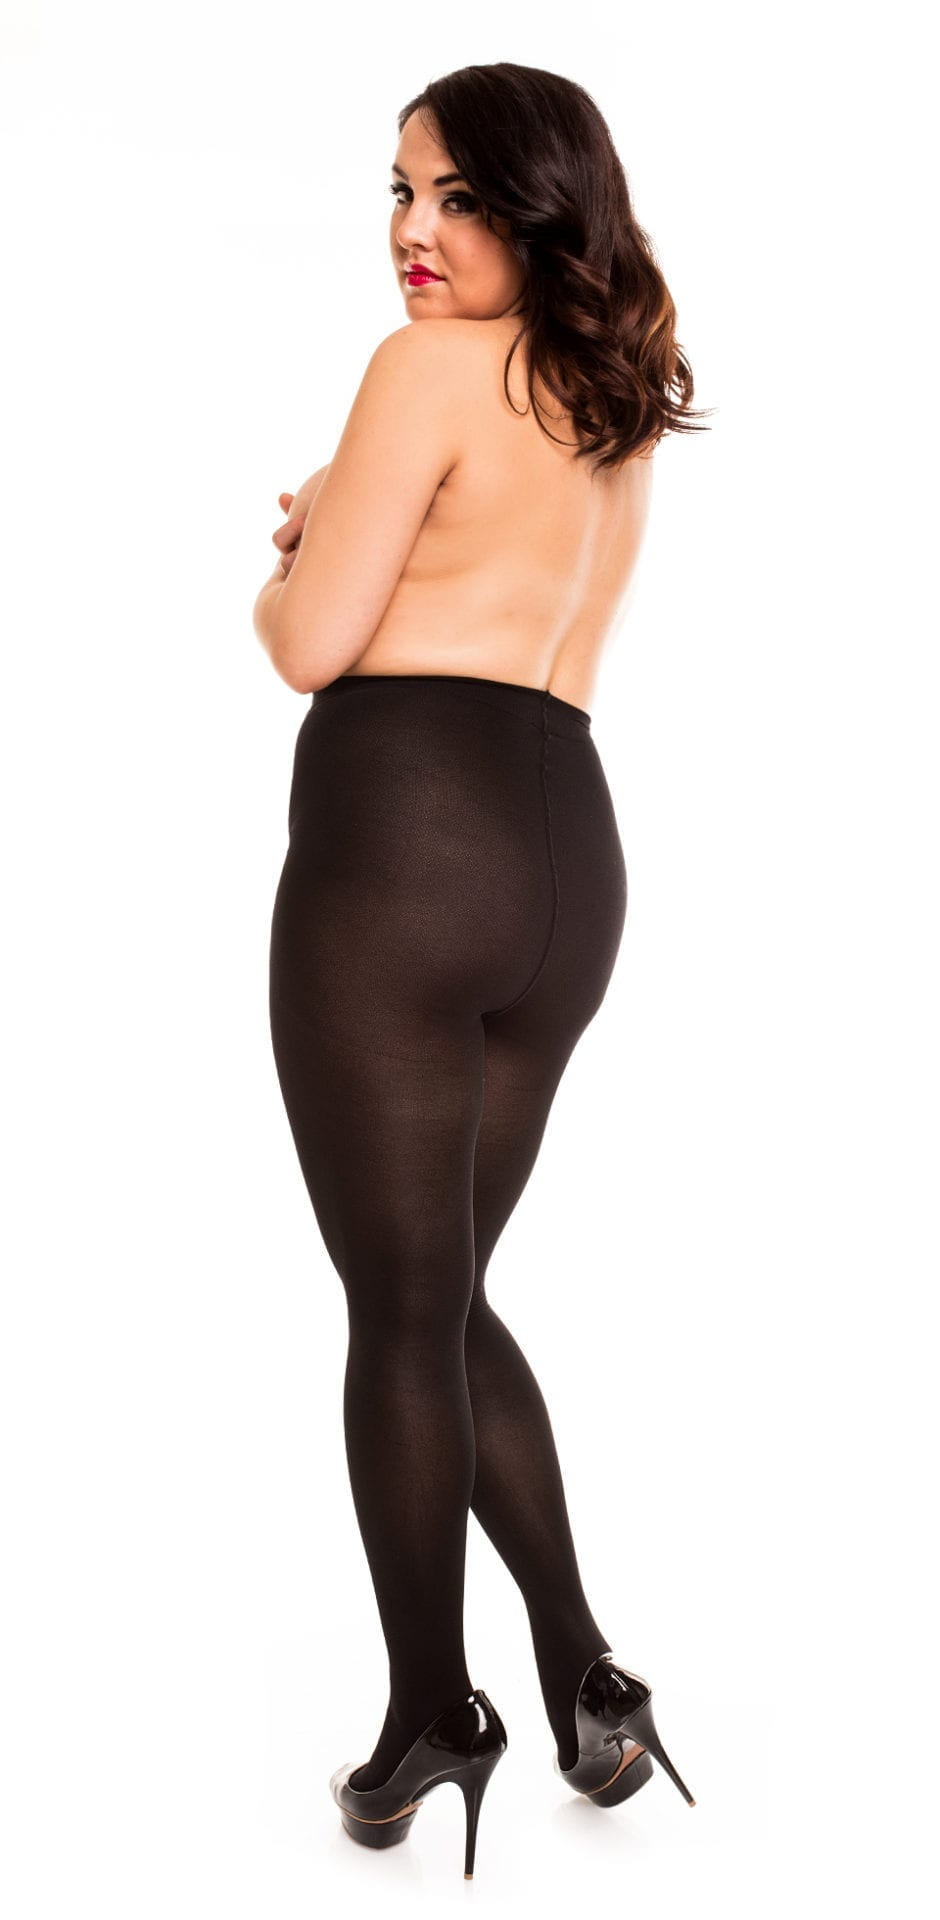 Plus size model wearing Glamory vital 70 support tights in color black back view